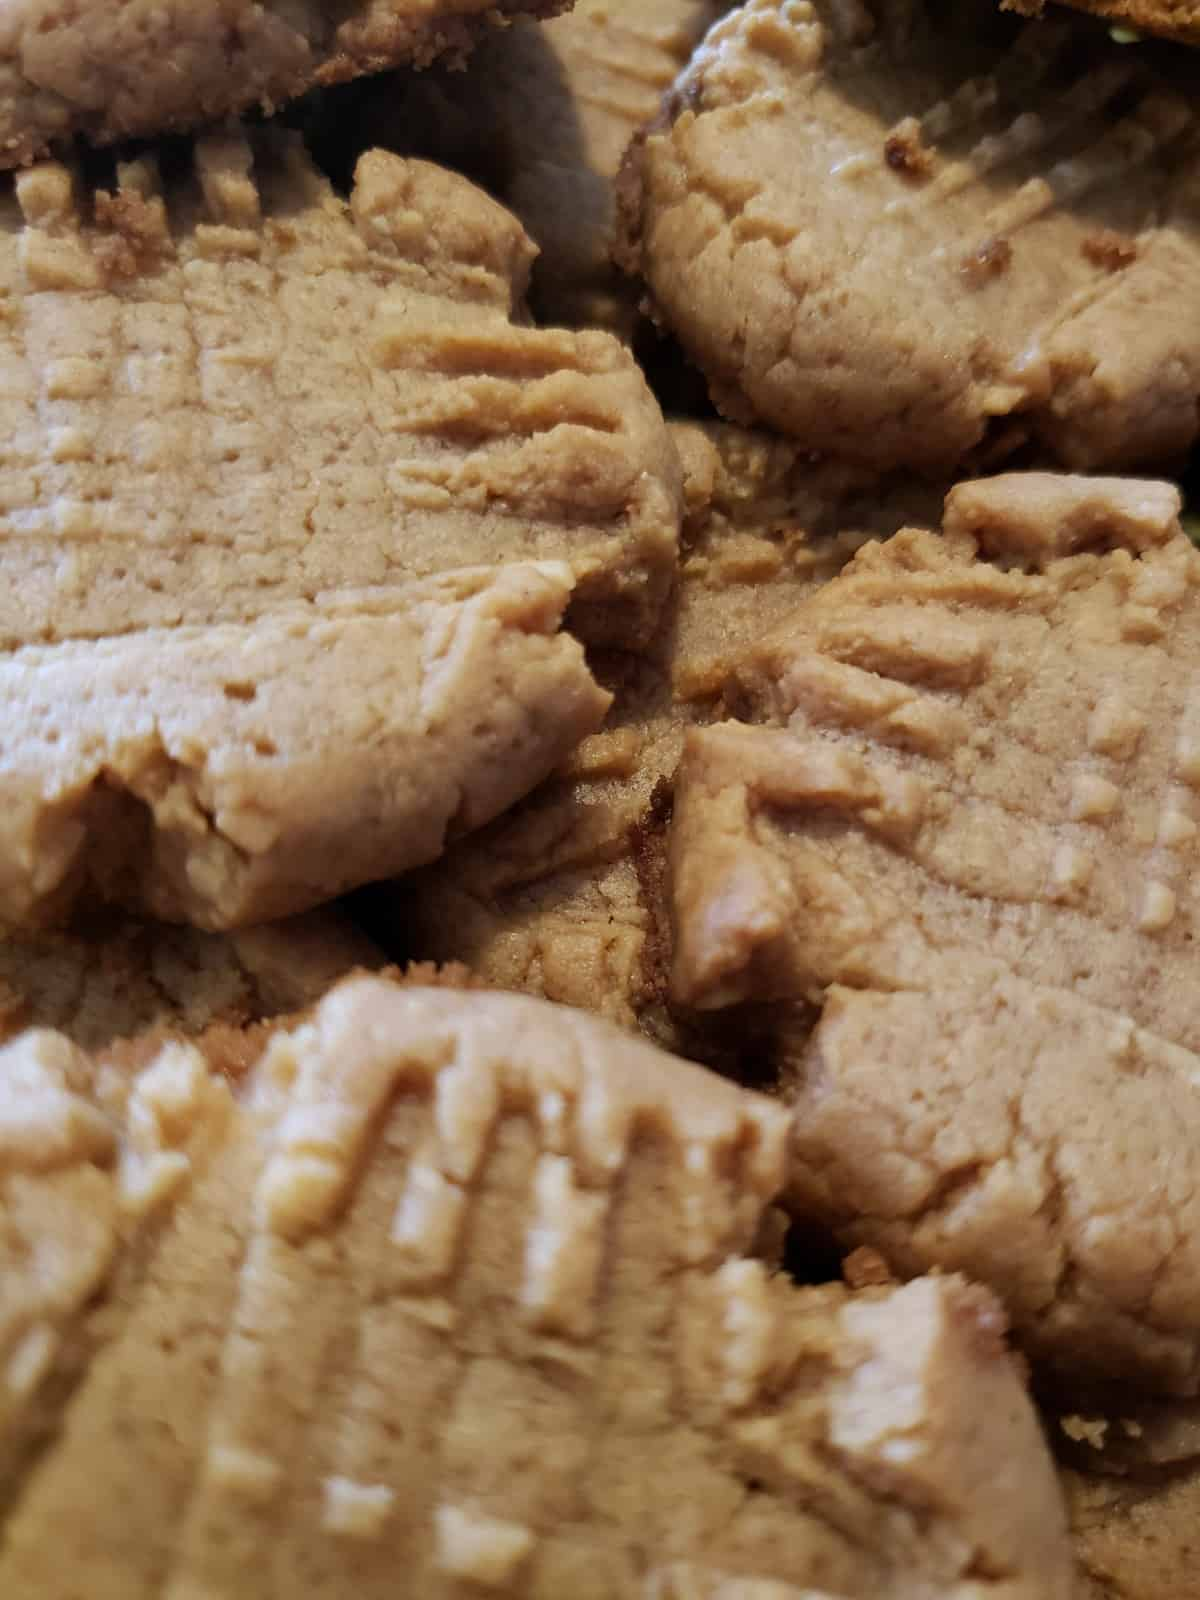 Dairy-free keto peanut butter cookies